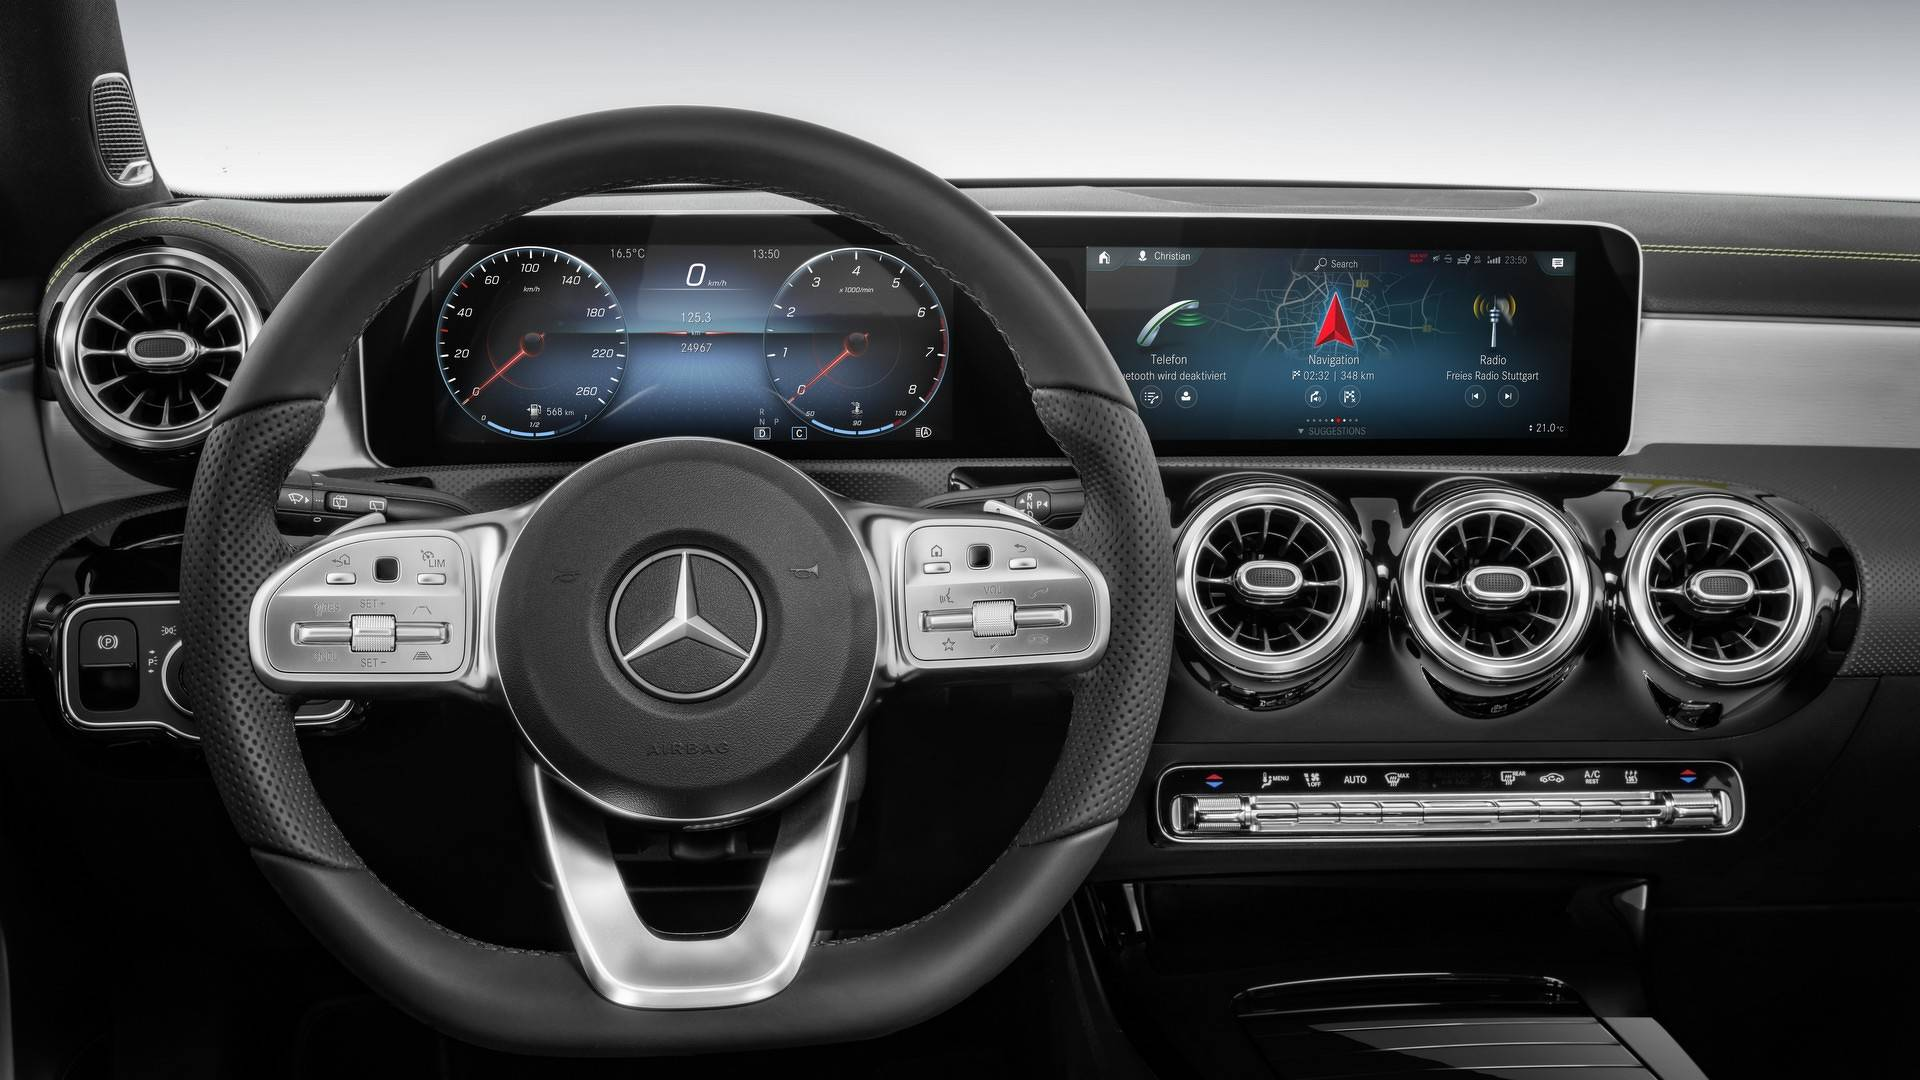 Mercedes B Klasse 2018 Interieur Mercedes A Class Shows Off Tech Heavy Dashboard In Great Detail